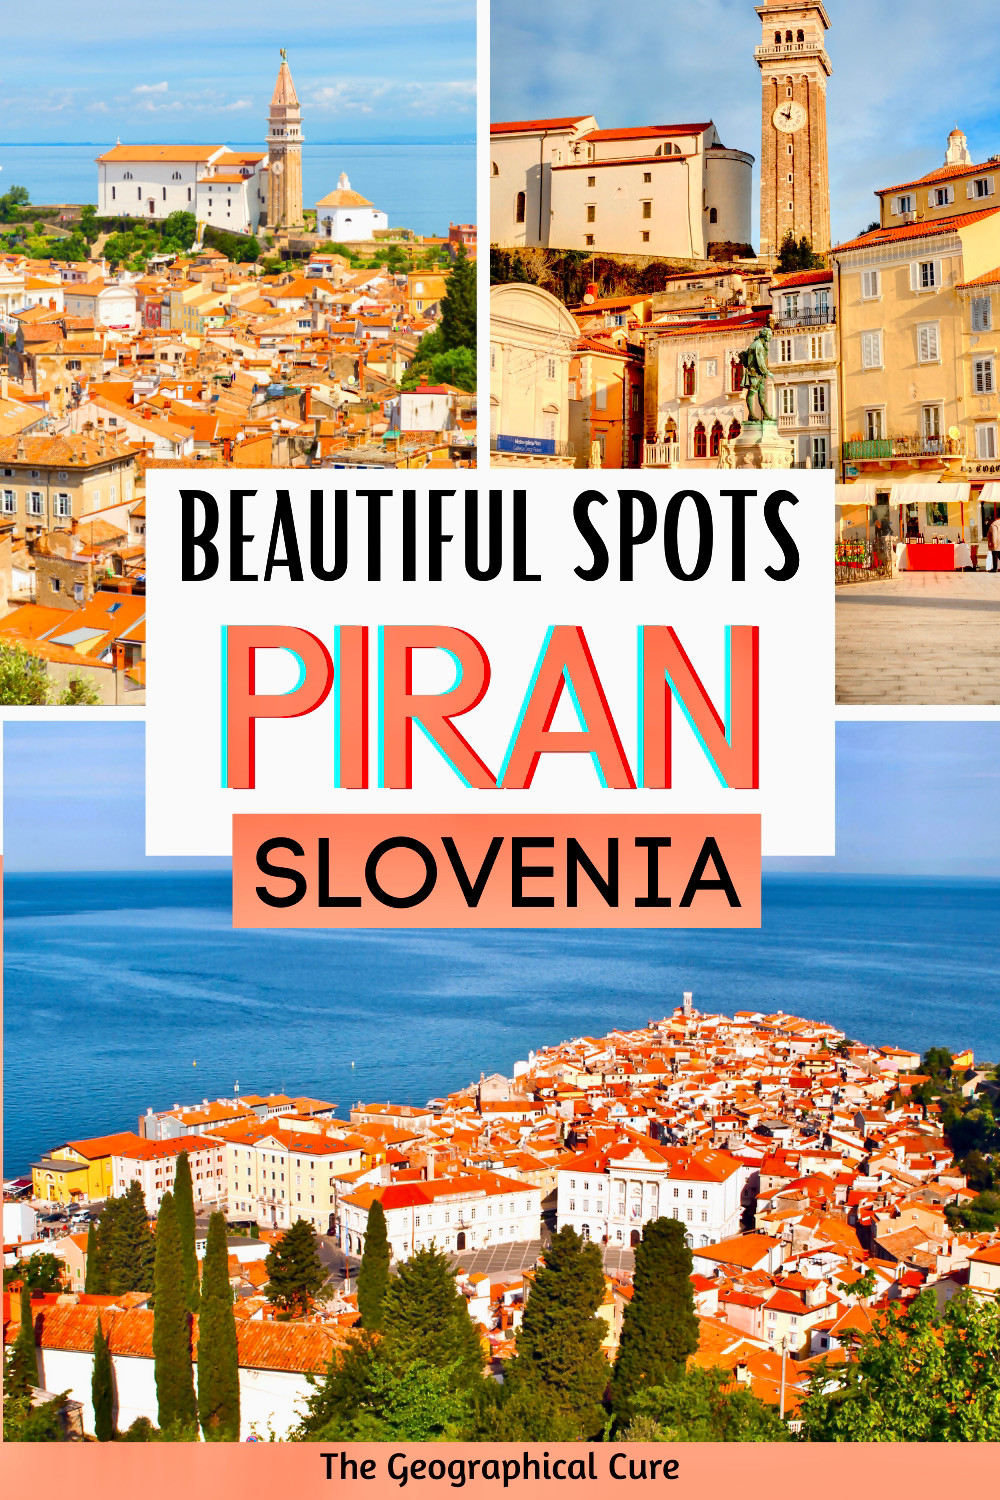 ultimate guide to visiting Piran Slovenia, with all the must see sites and landmarks